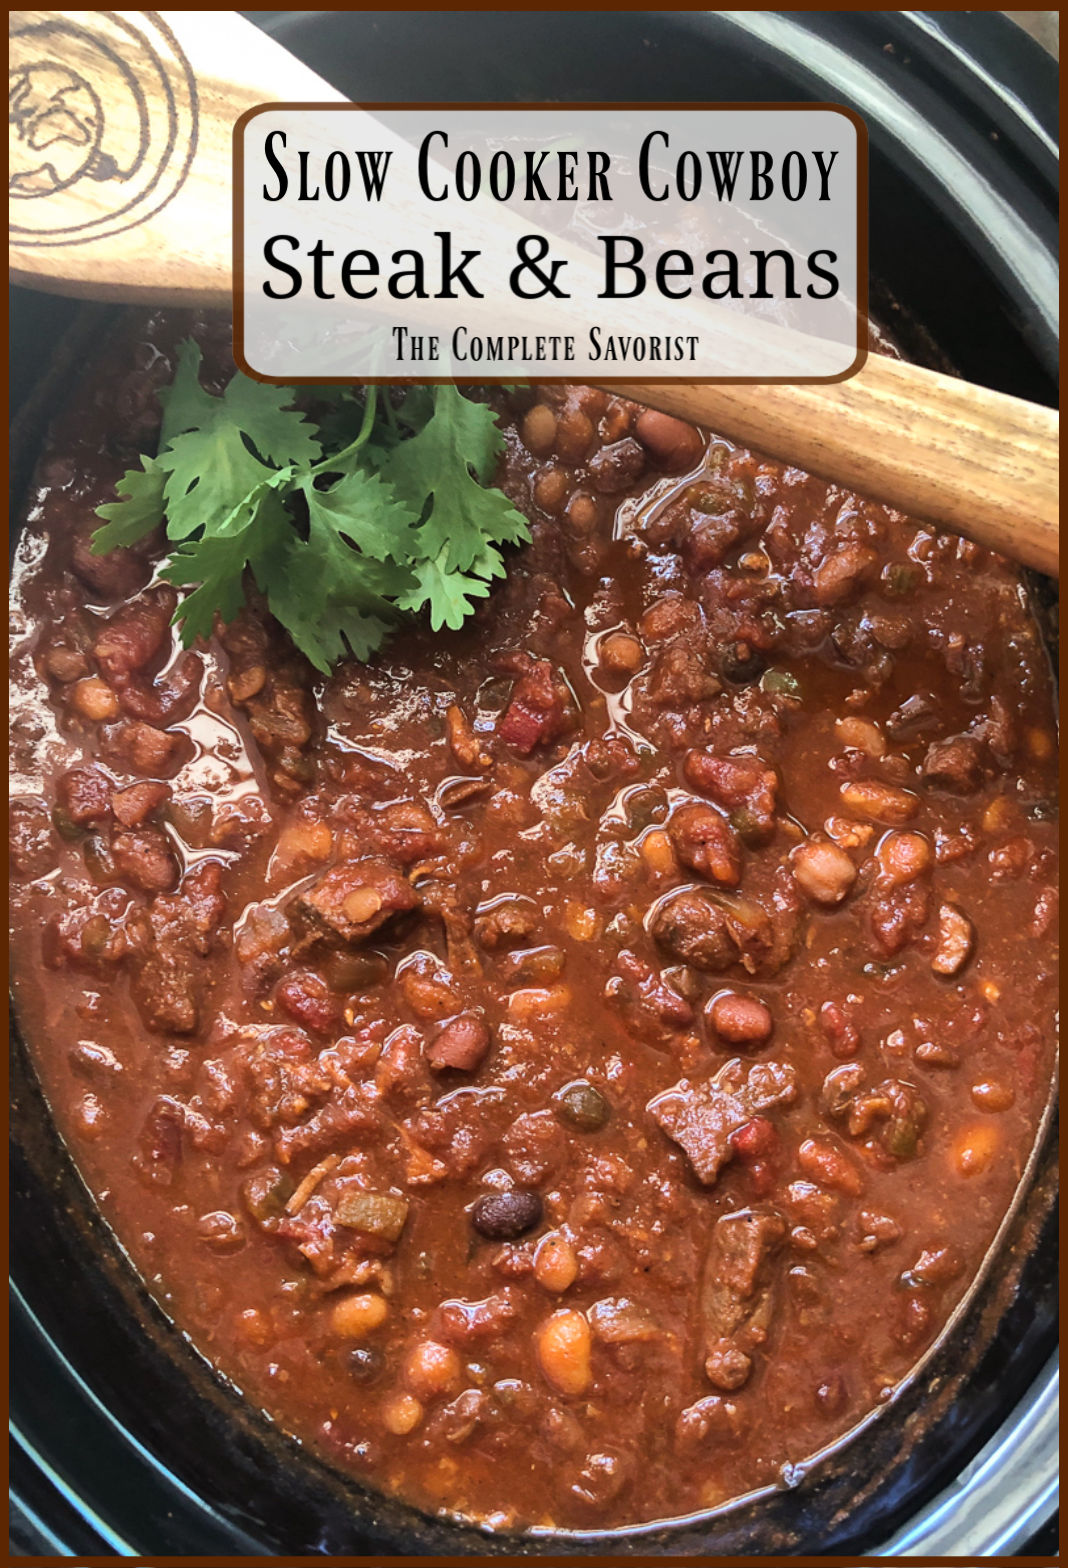 Slow Cooker Cowboy Steak and Beans in the crock garnished with fresh cilantro and a wooden spoon with website logo.